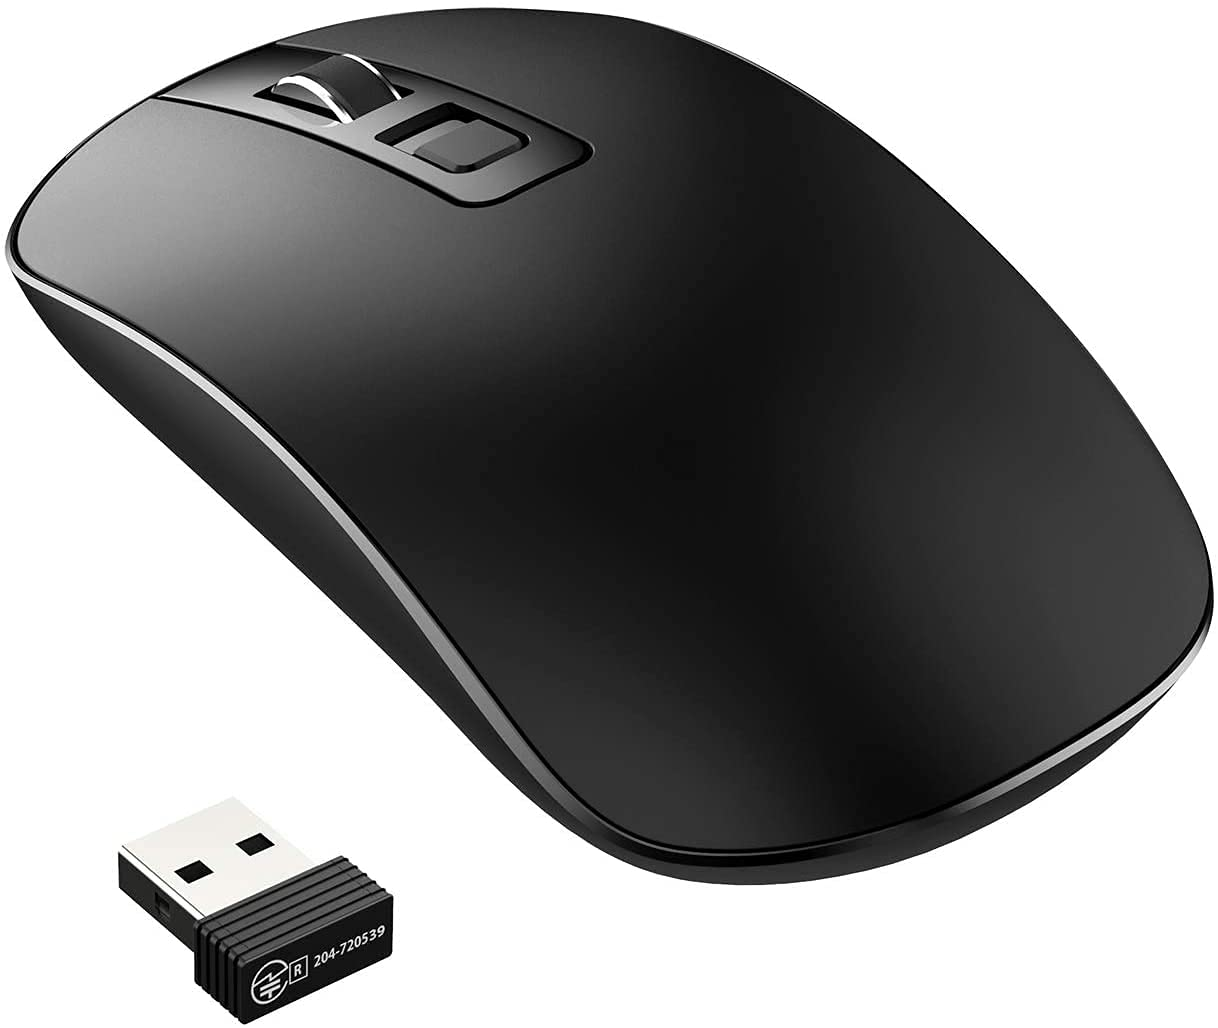 Epeios Wireless Mouse, 2.4G with USB Mini-Receiver, 1600 DPI Optical Tracking, Portable and Energy-Saving, Slim Wireless Mouse with Quiet Click for PC/Mac/Laptop - Black